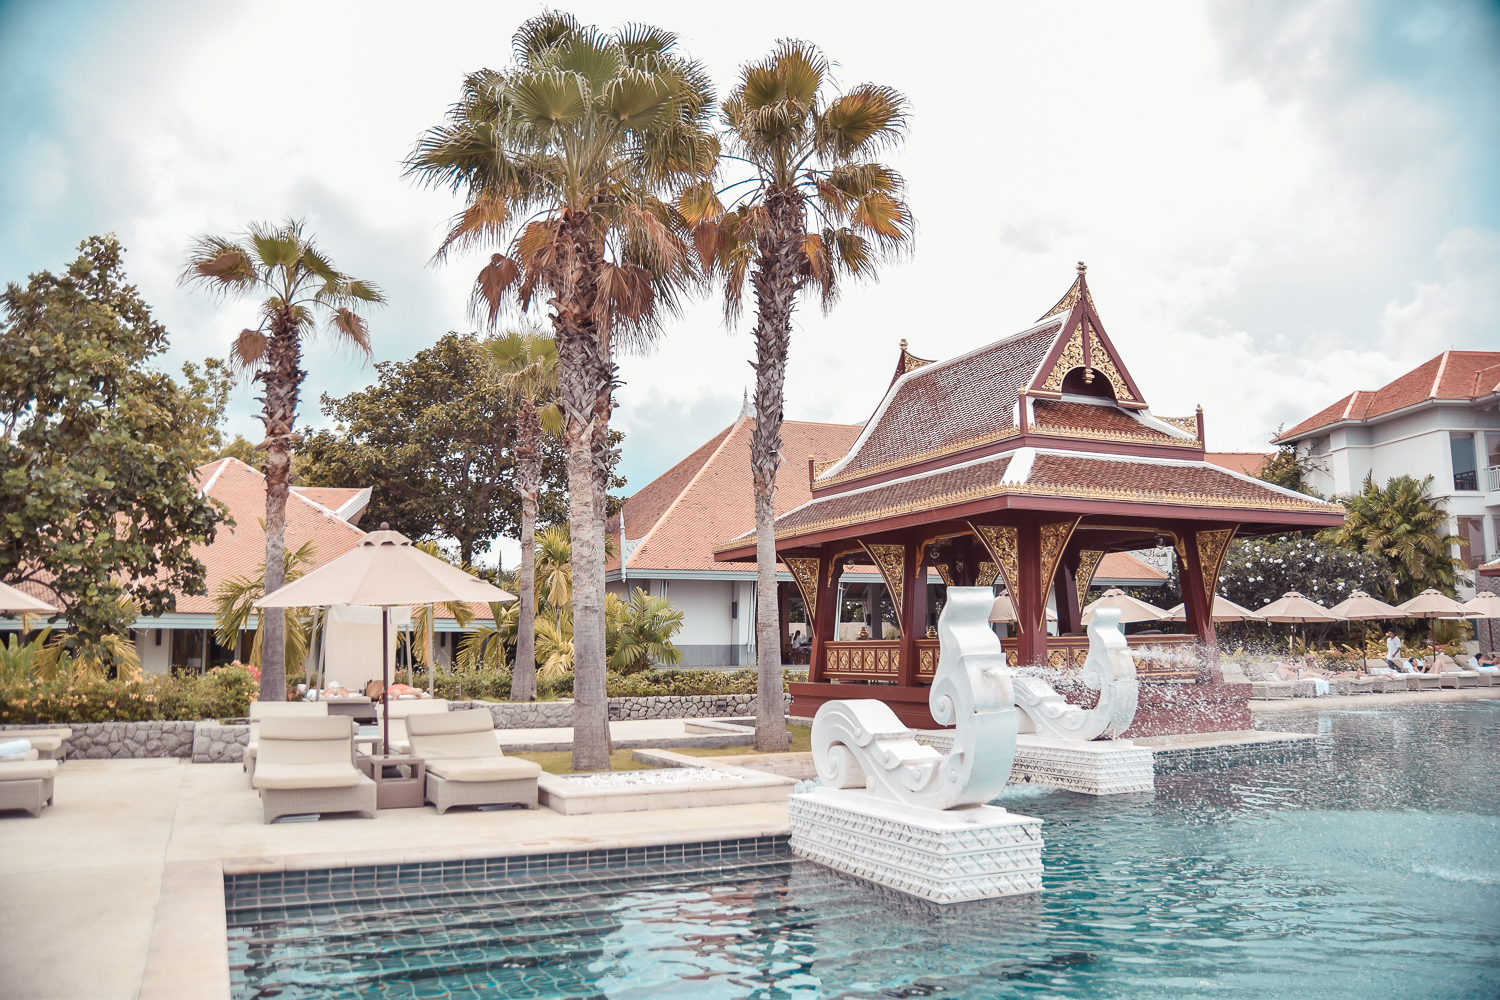 Balkongestaltung Mediterran Thailand Amatara Wellness Resort The Mandarine Girl Bloglovin